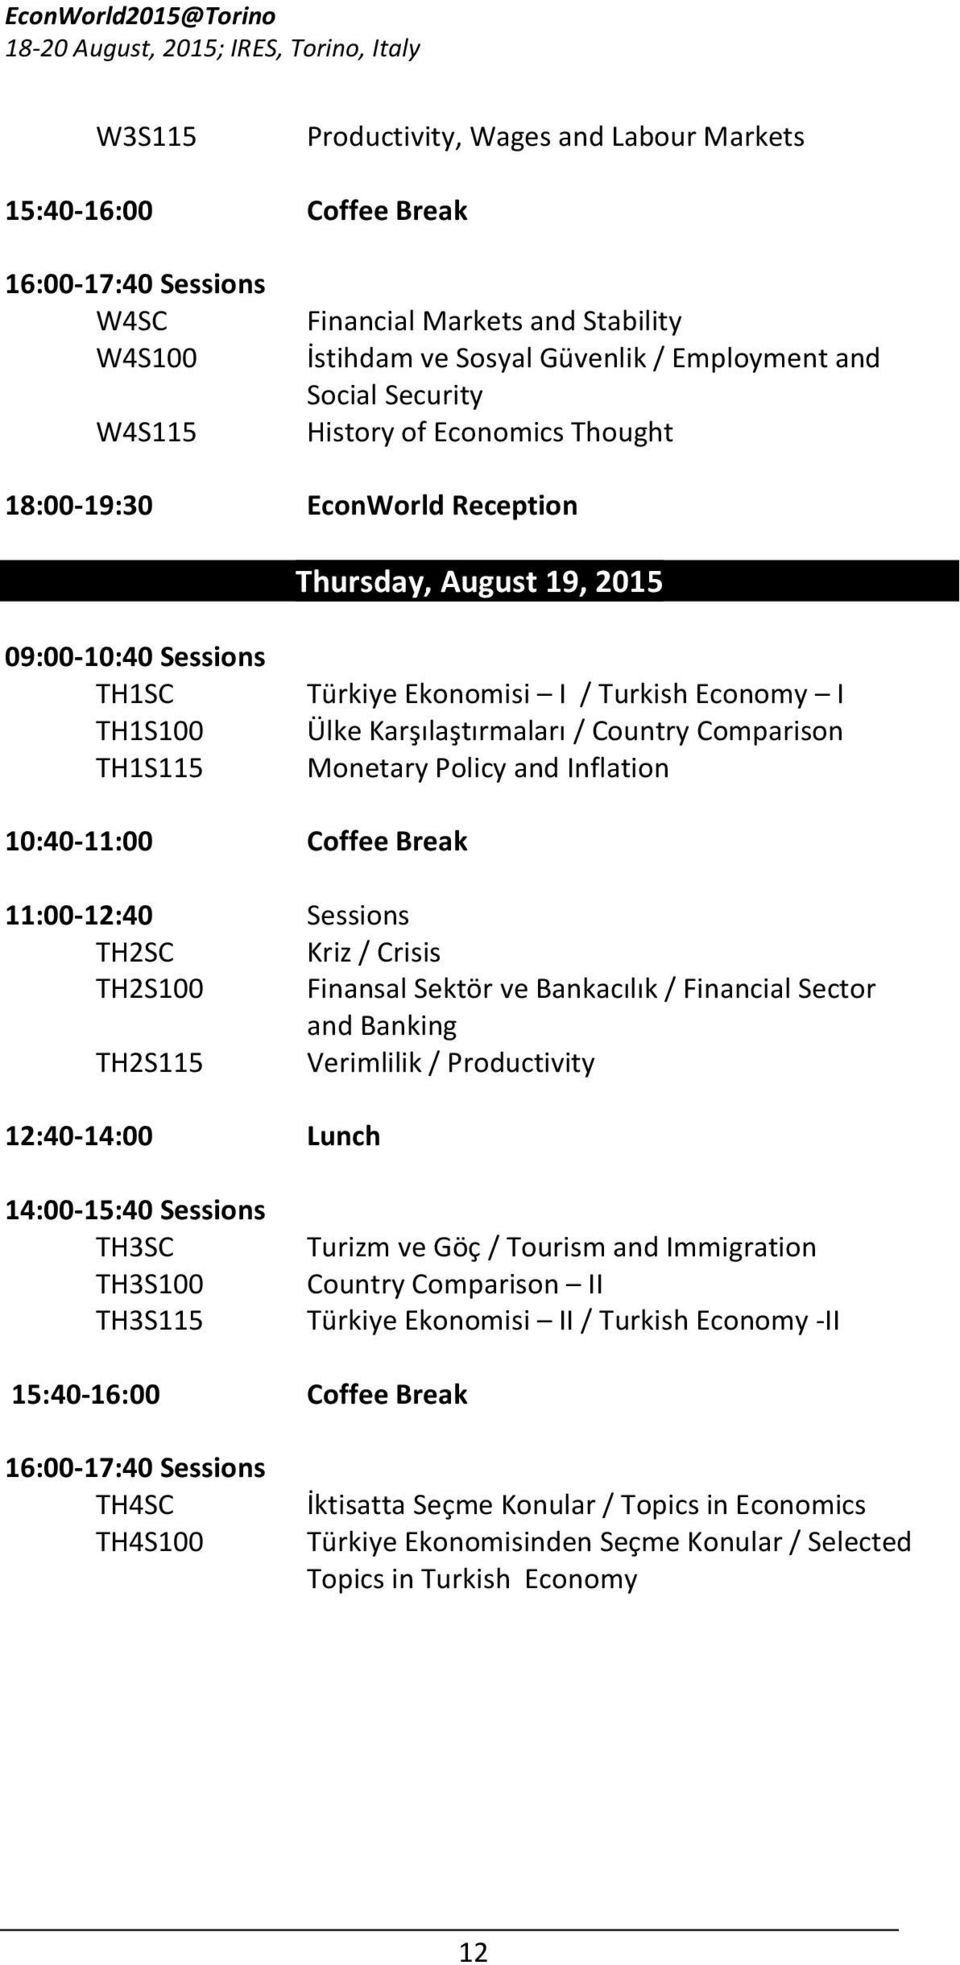 14:00-15:40 Sessions TH3SC TH3S100 TH3S115 15:40-16:00 16:00-17:40 Sessions TH4SC TH4S100 Türkiye Ekonomisi I / Turkish Economy I Ülke Karşılaştırmaları / Country Comparison Monetary Policy and